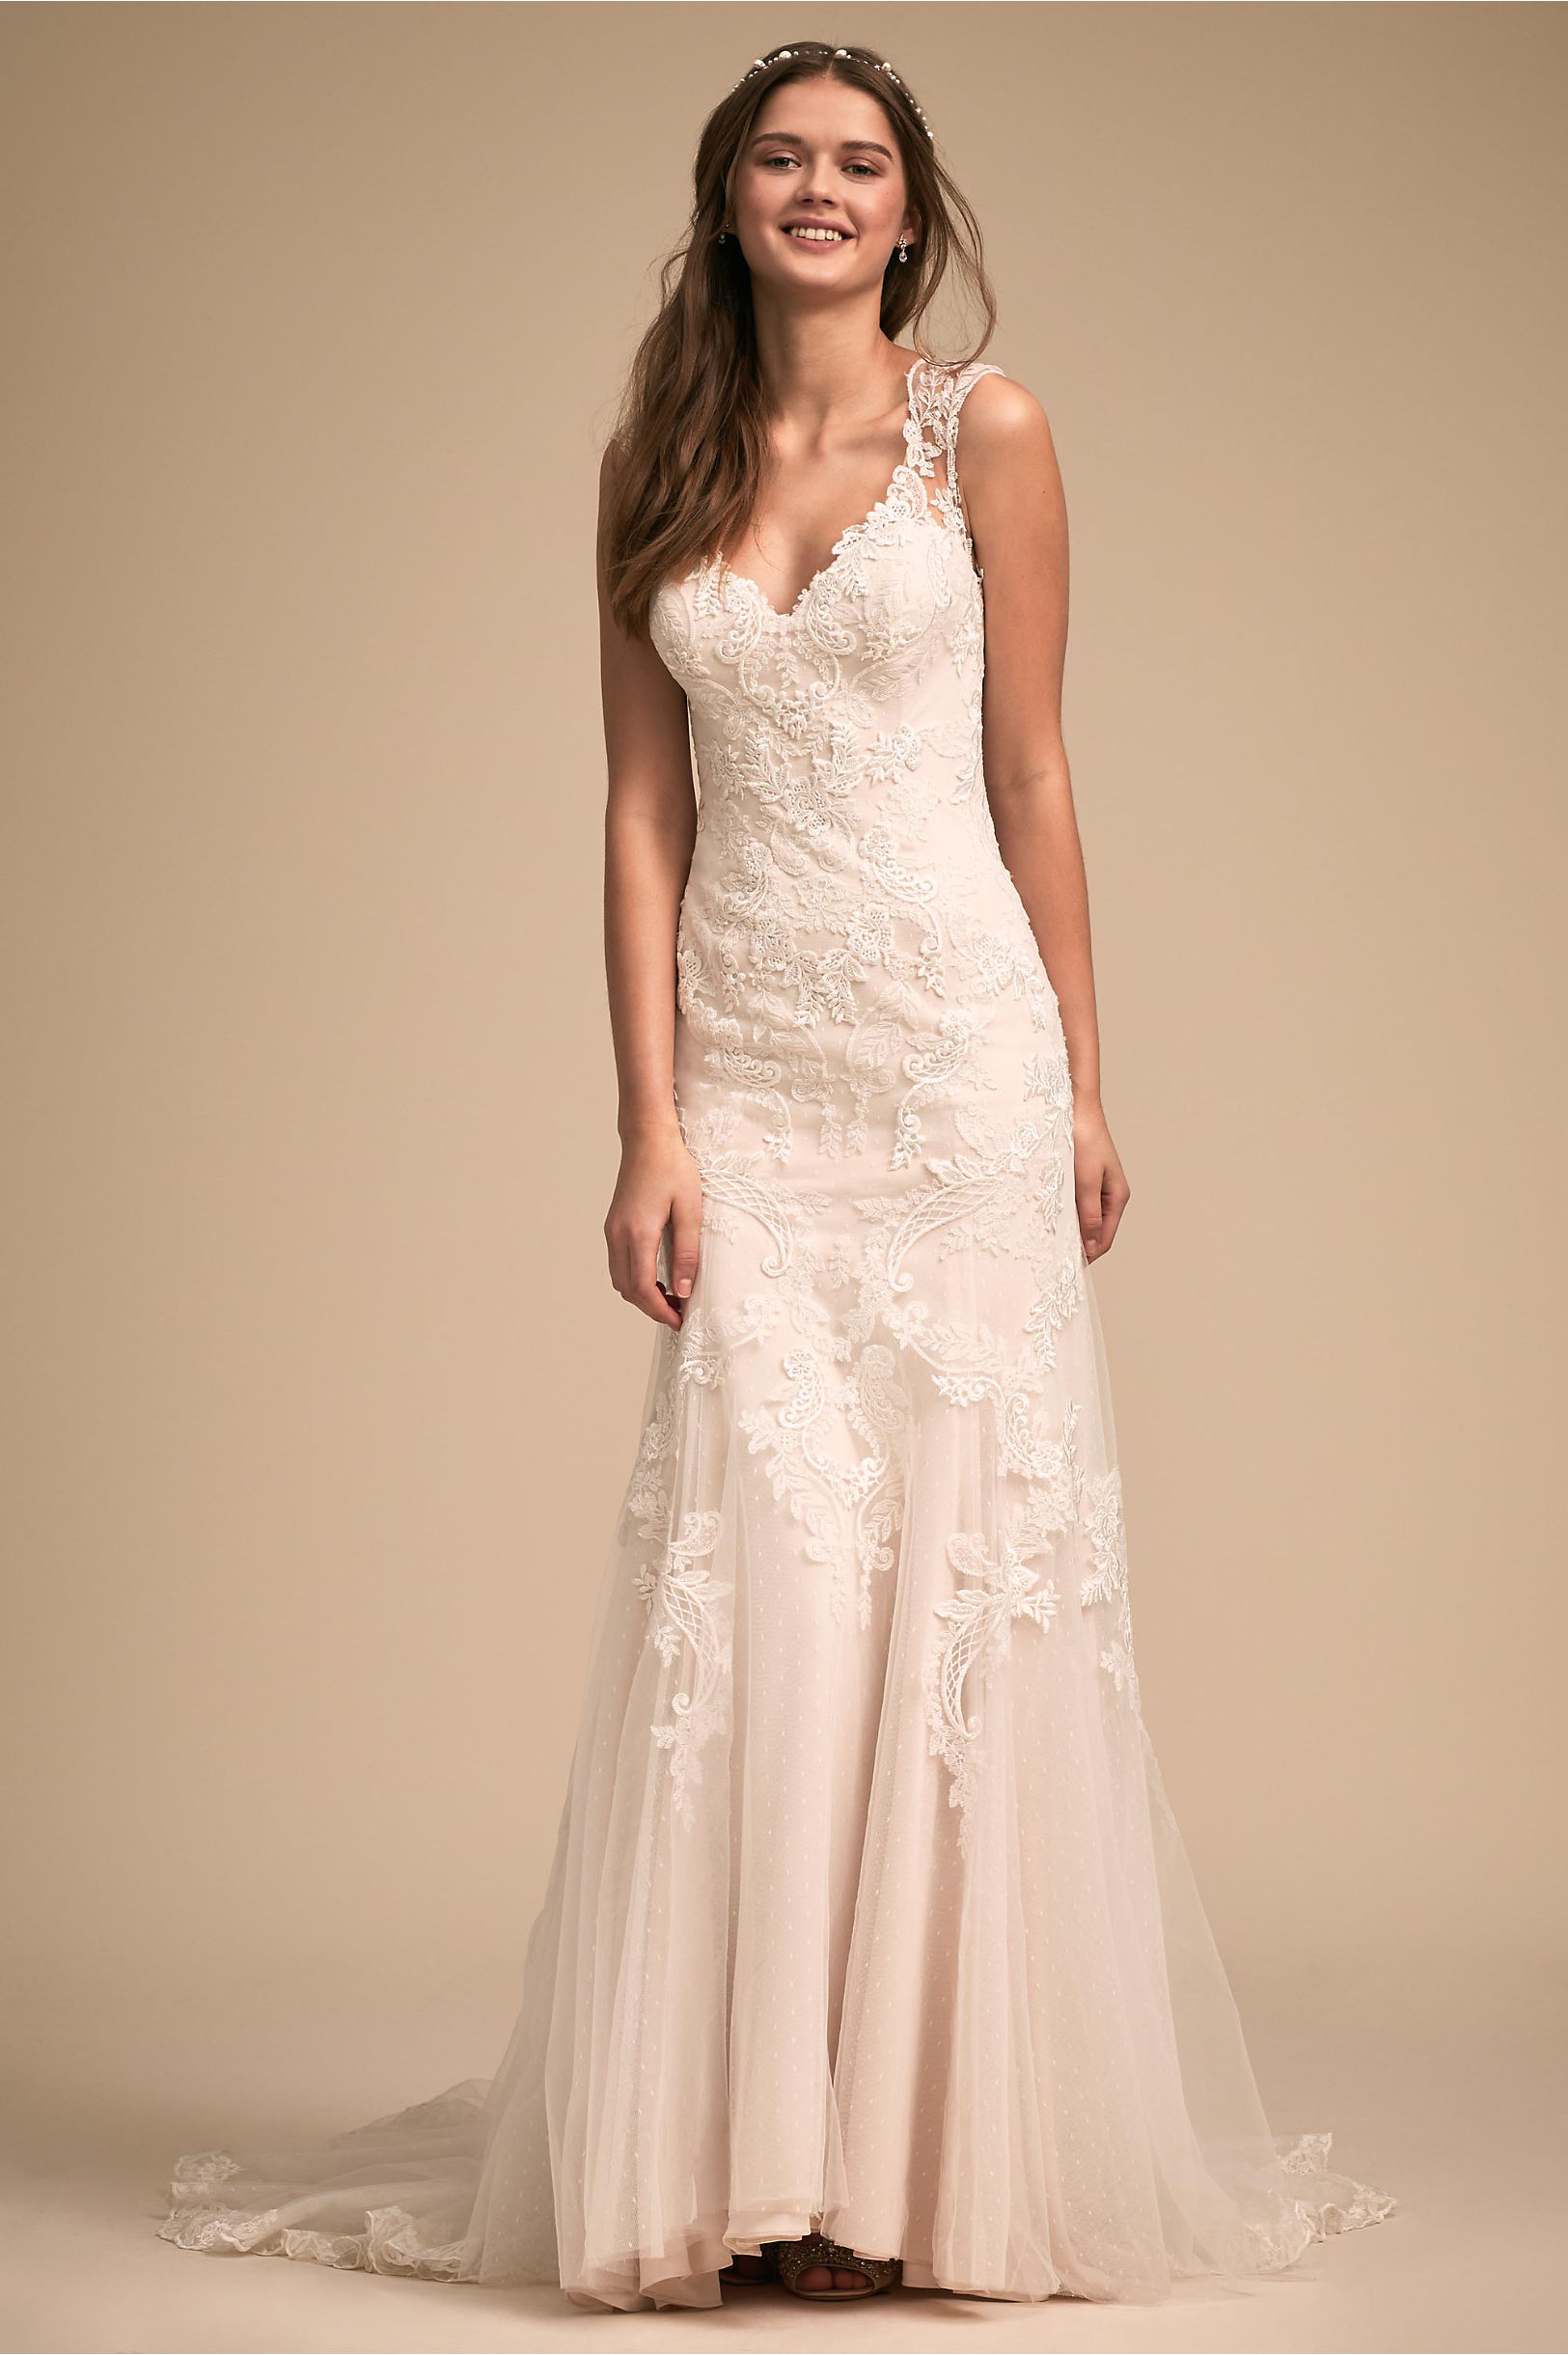 Lure of Lace Gown Ivory in Bride | BHLDN